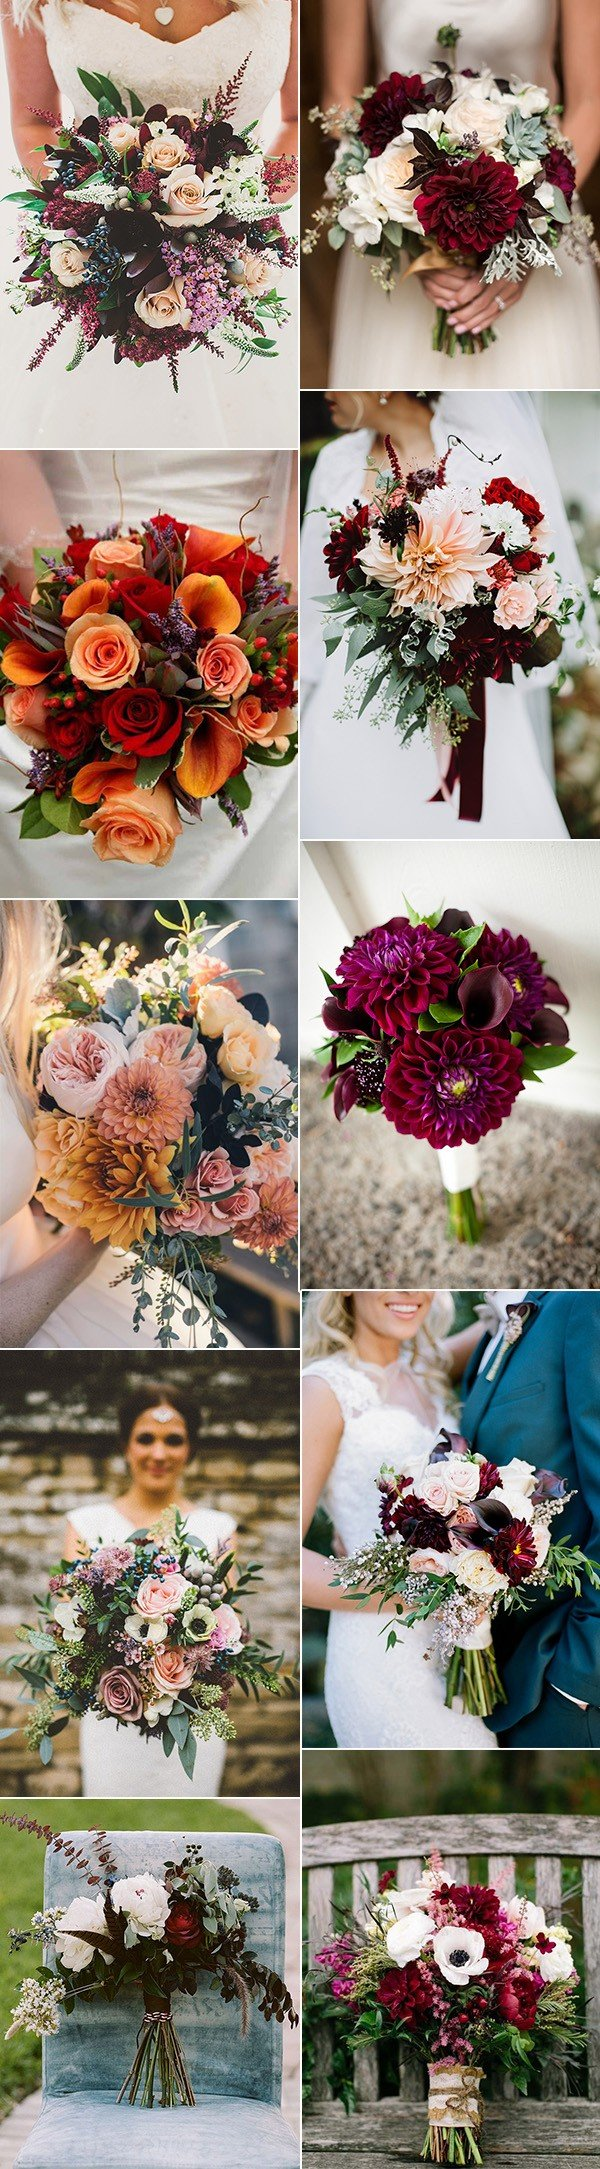 fall wedding bouquets flower ideas